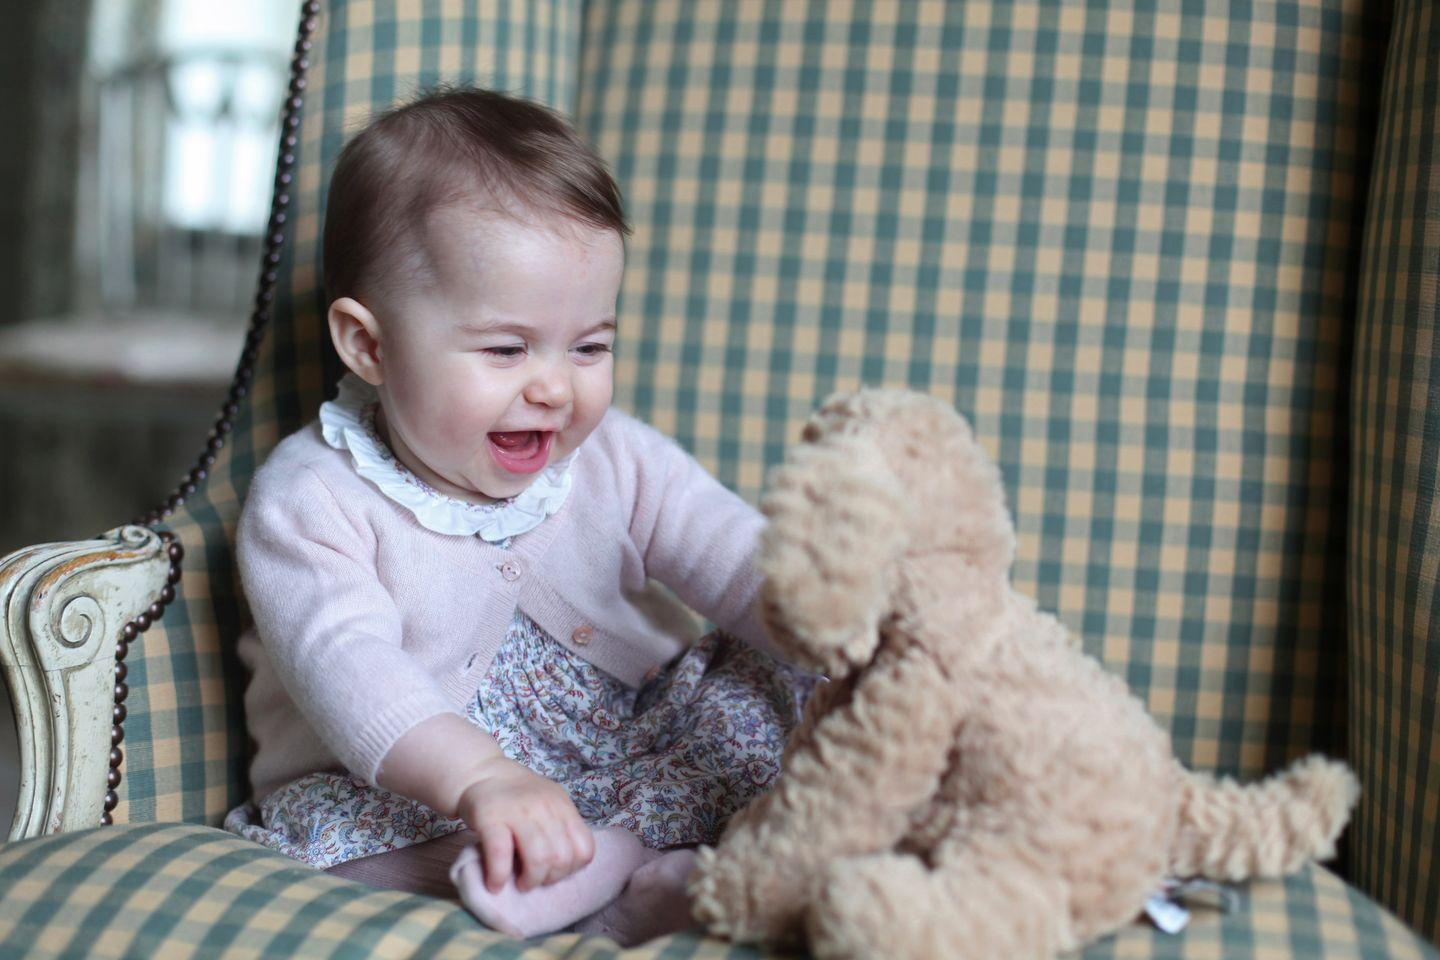 """<p>In addition to her royal duties, Duchess Kate is also a skilled photographer. Case in point, <span class=""""redactor-unlink"""">this candid portrait</span> of Charlotte with her favorite stuffed puppy. </p><p>Something of an early Christmas gift, the palace <a href=""""https://www.townandcountrymag.com/society/tradition/a4447/new-photos-princess-charlotte/"""" target=""""_blank"""">released a series of photos</a> in November 2015 along with the statement: """"The Duke and Duchess continue to receive warm messages about Princess Charlotte from all around the world and they hope that everyone enjoys these lovely photos as much as they do.""""</p>"""